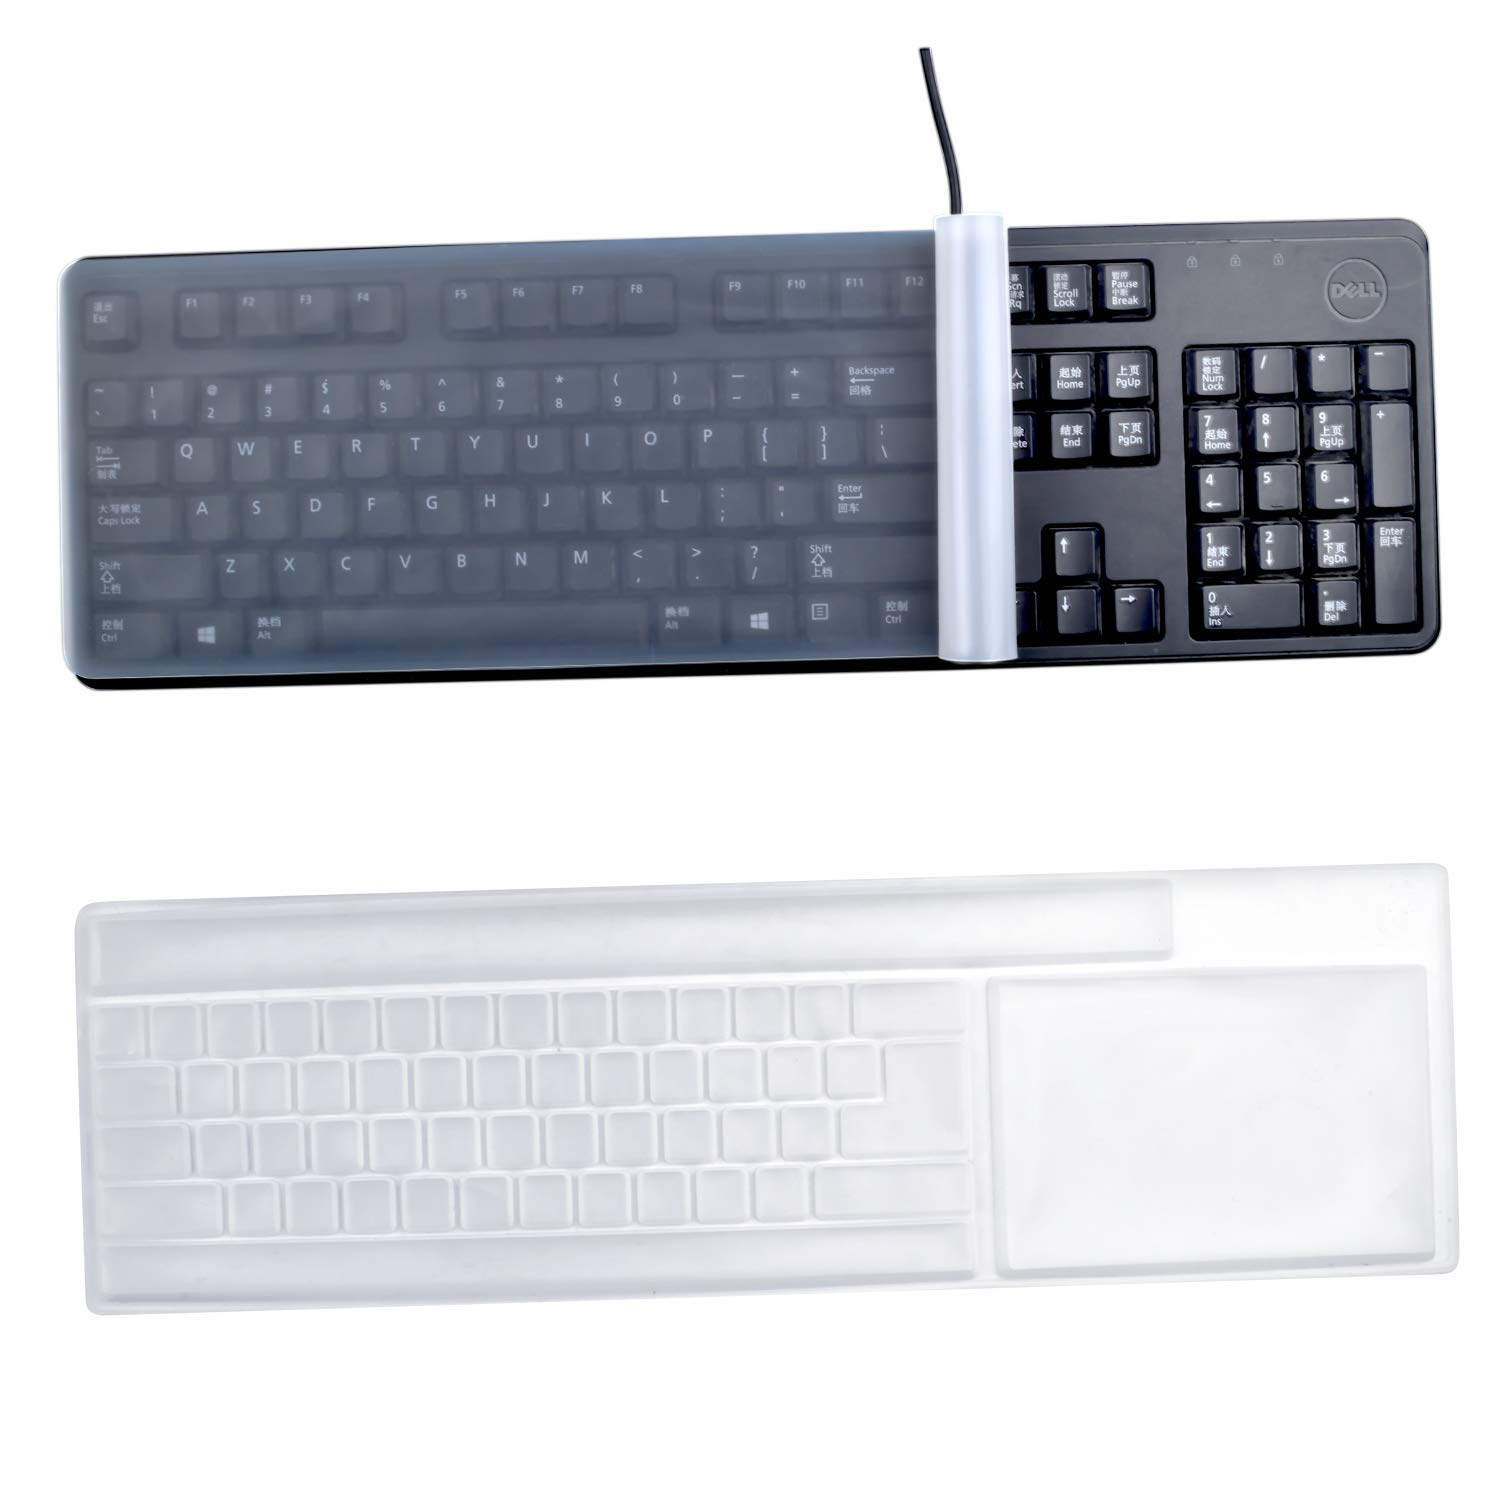 Keyboard Covers Category 1817928 Protect WYSE KU-8933 Keyboard Cover